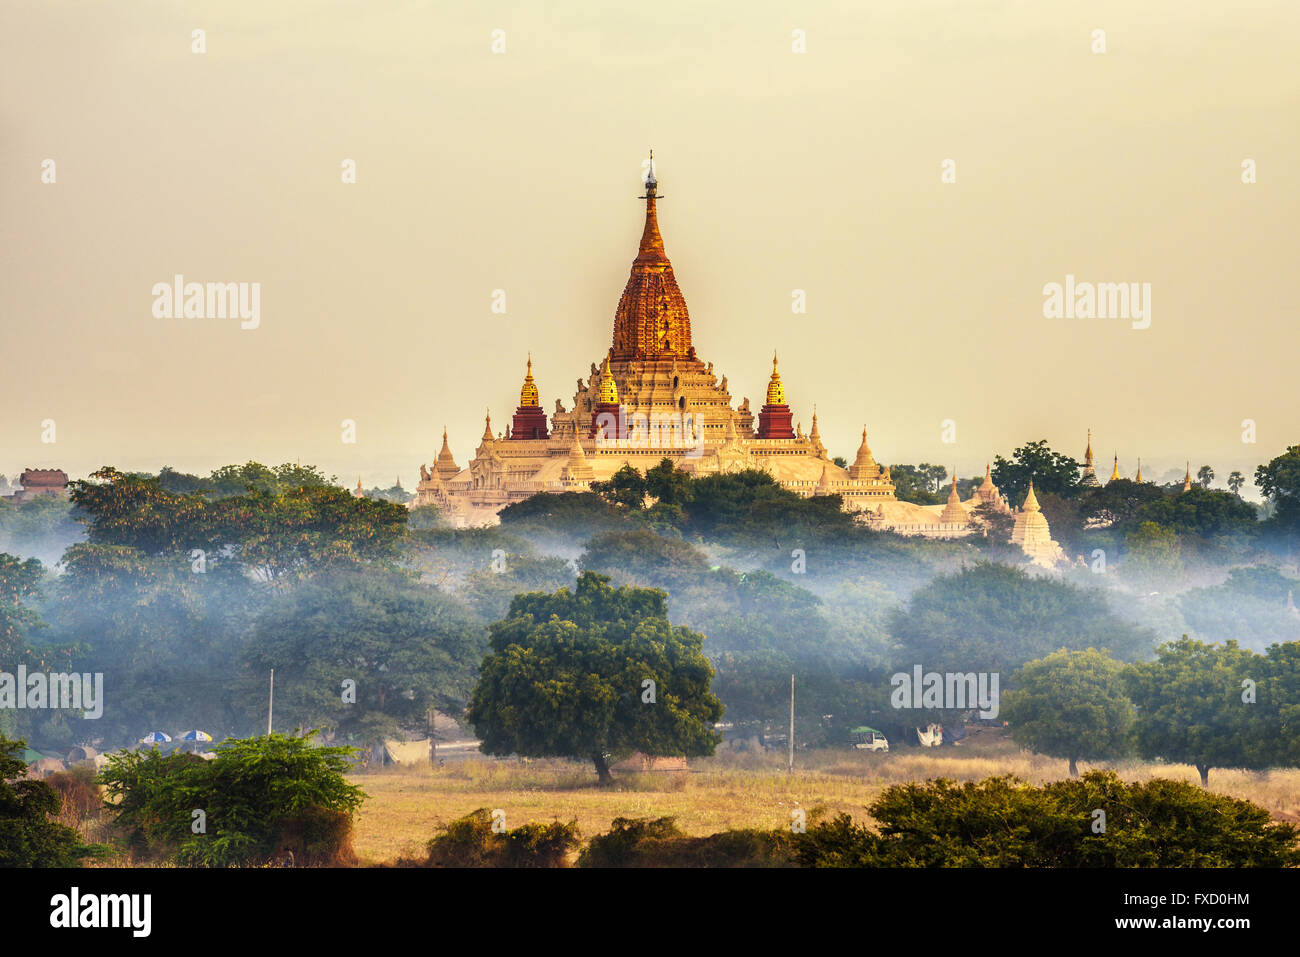 Ananda temple in Bagan at sunrise - Stock Image